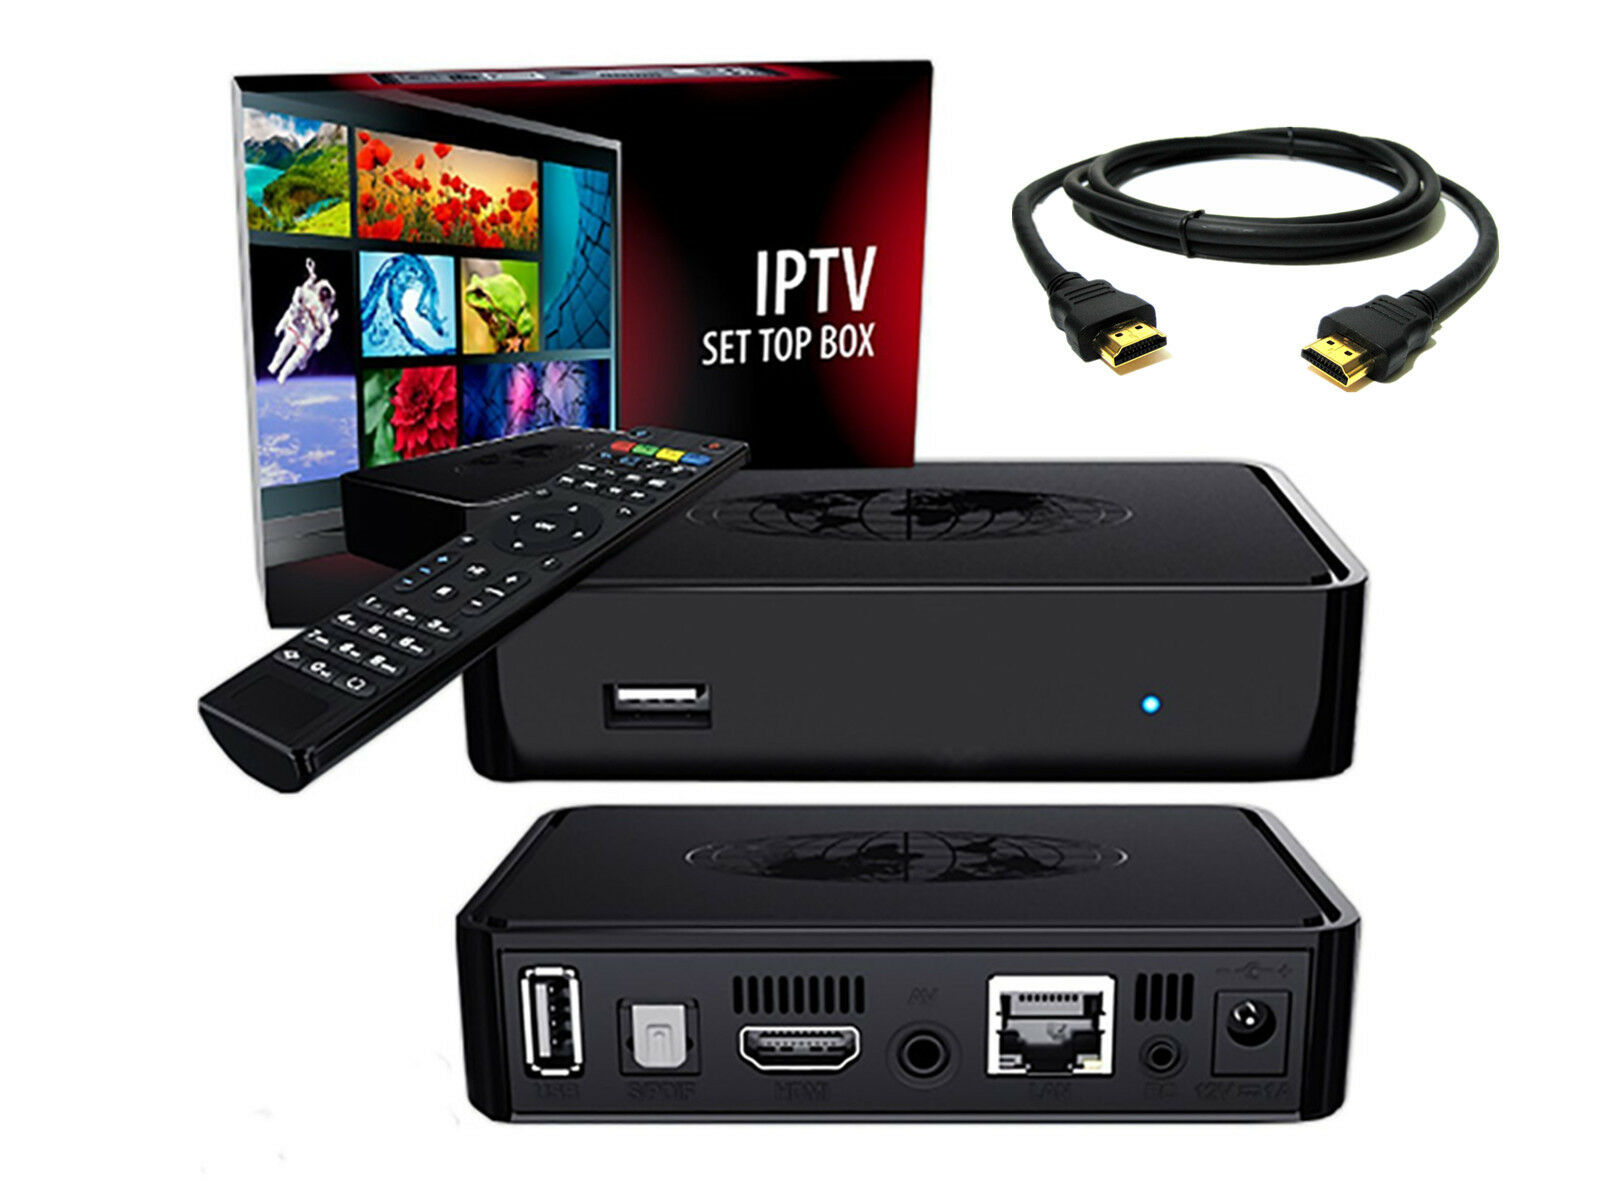 s-l1600 New MAG 254 Set Top Box Updated MAG 250 IPTV OTT linux tv Streaming Media Player